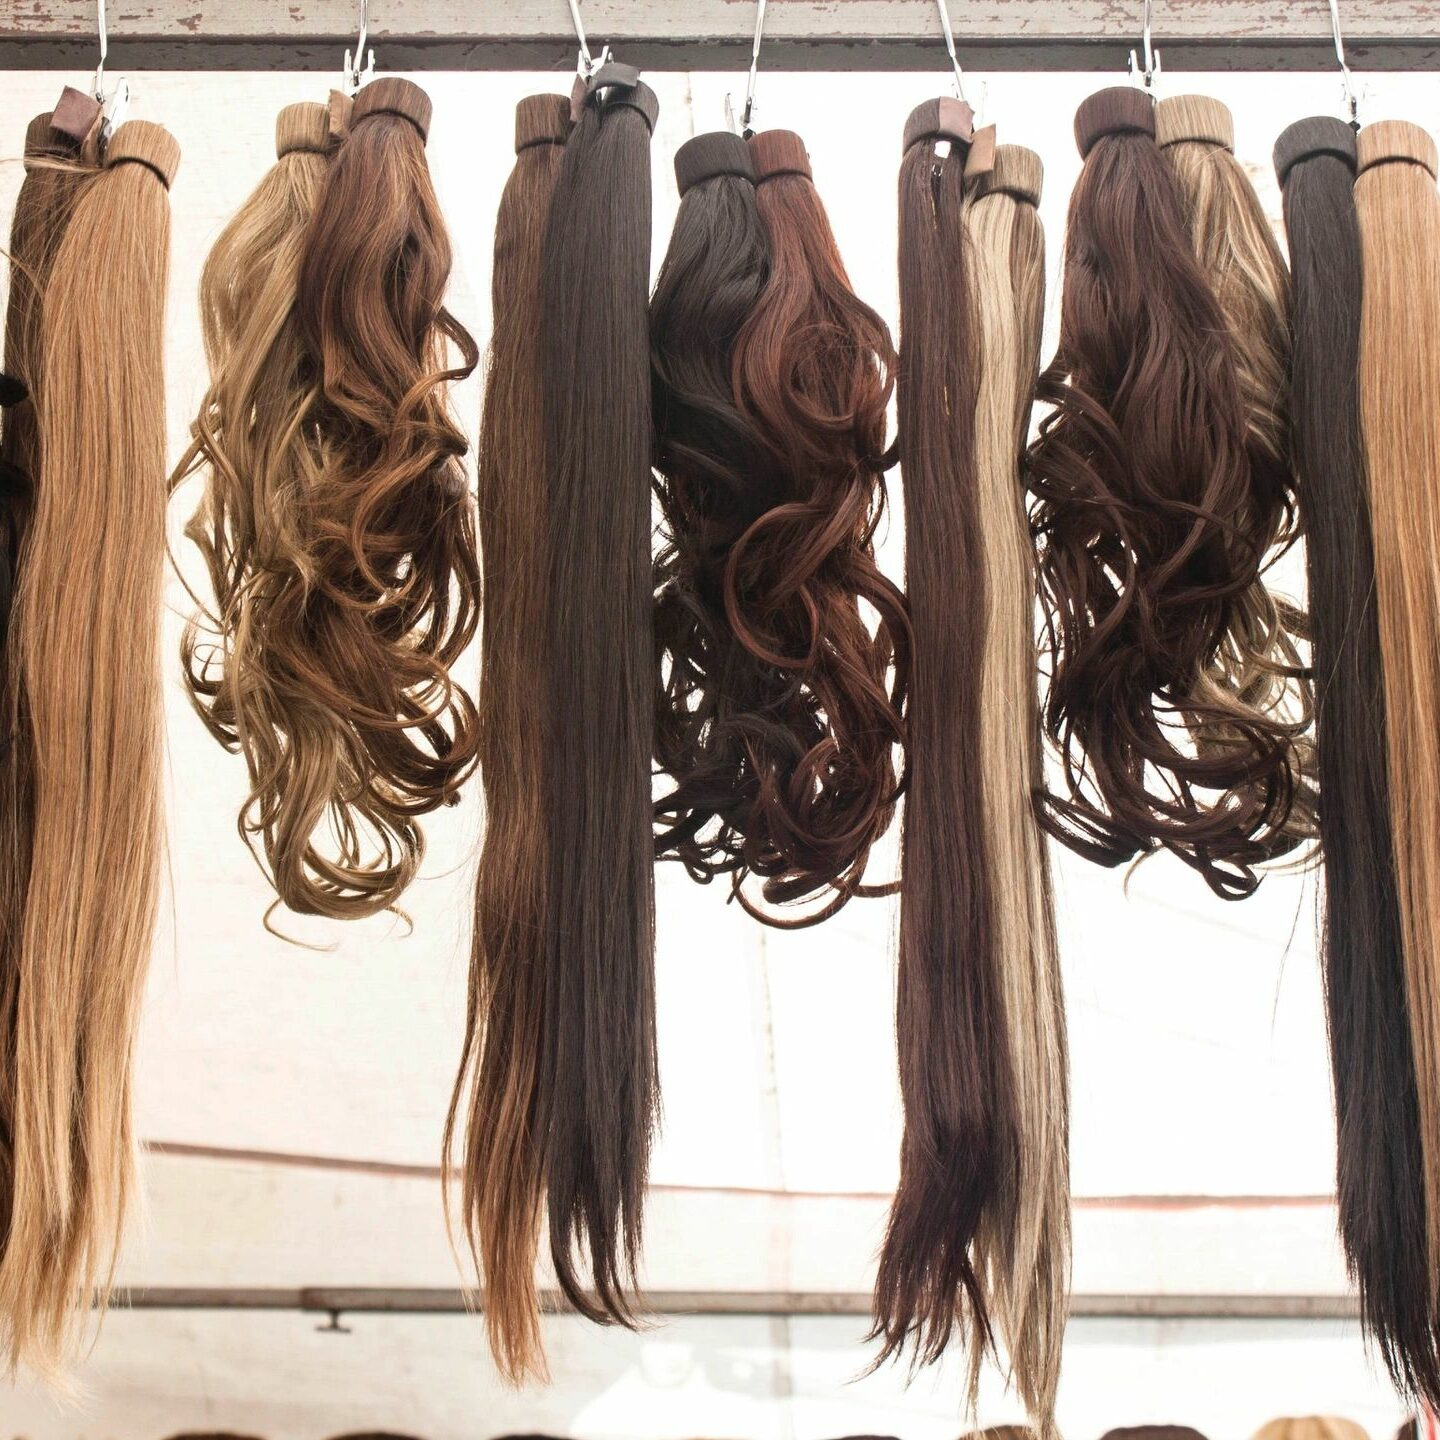 Hair Salon Norristown Hair Extensions